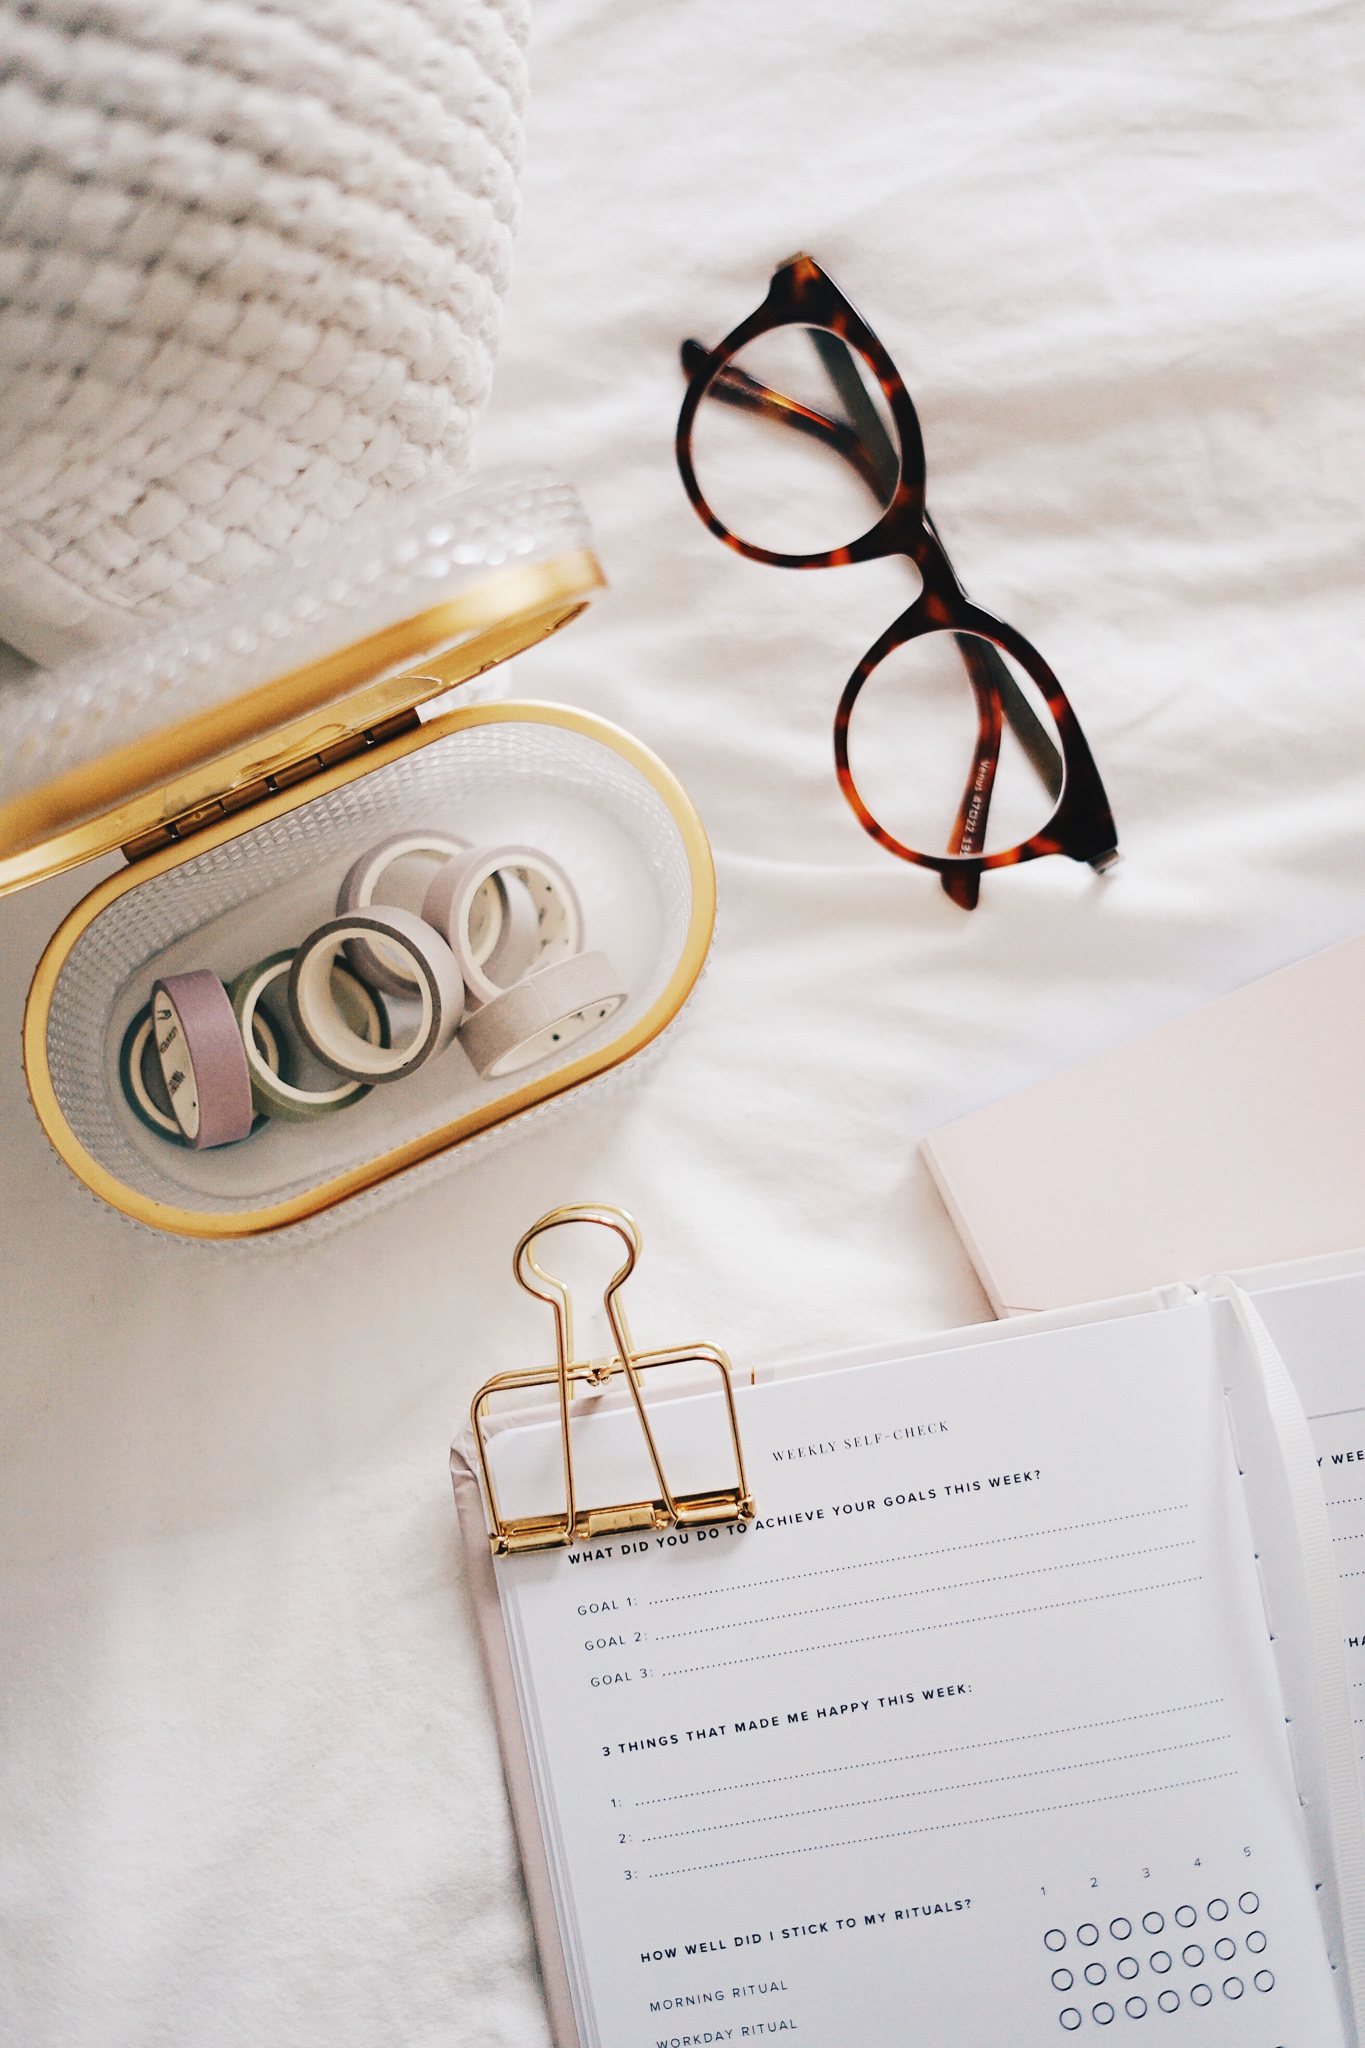 Glasses, tape and an old fashioned paper organizer laid on the bed.